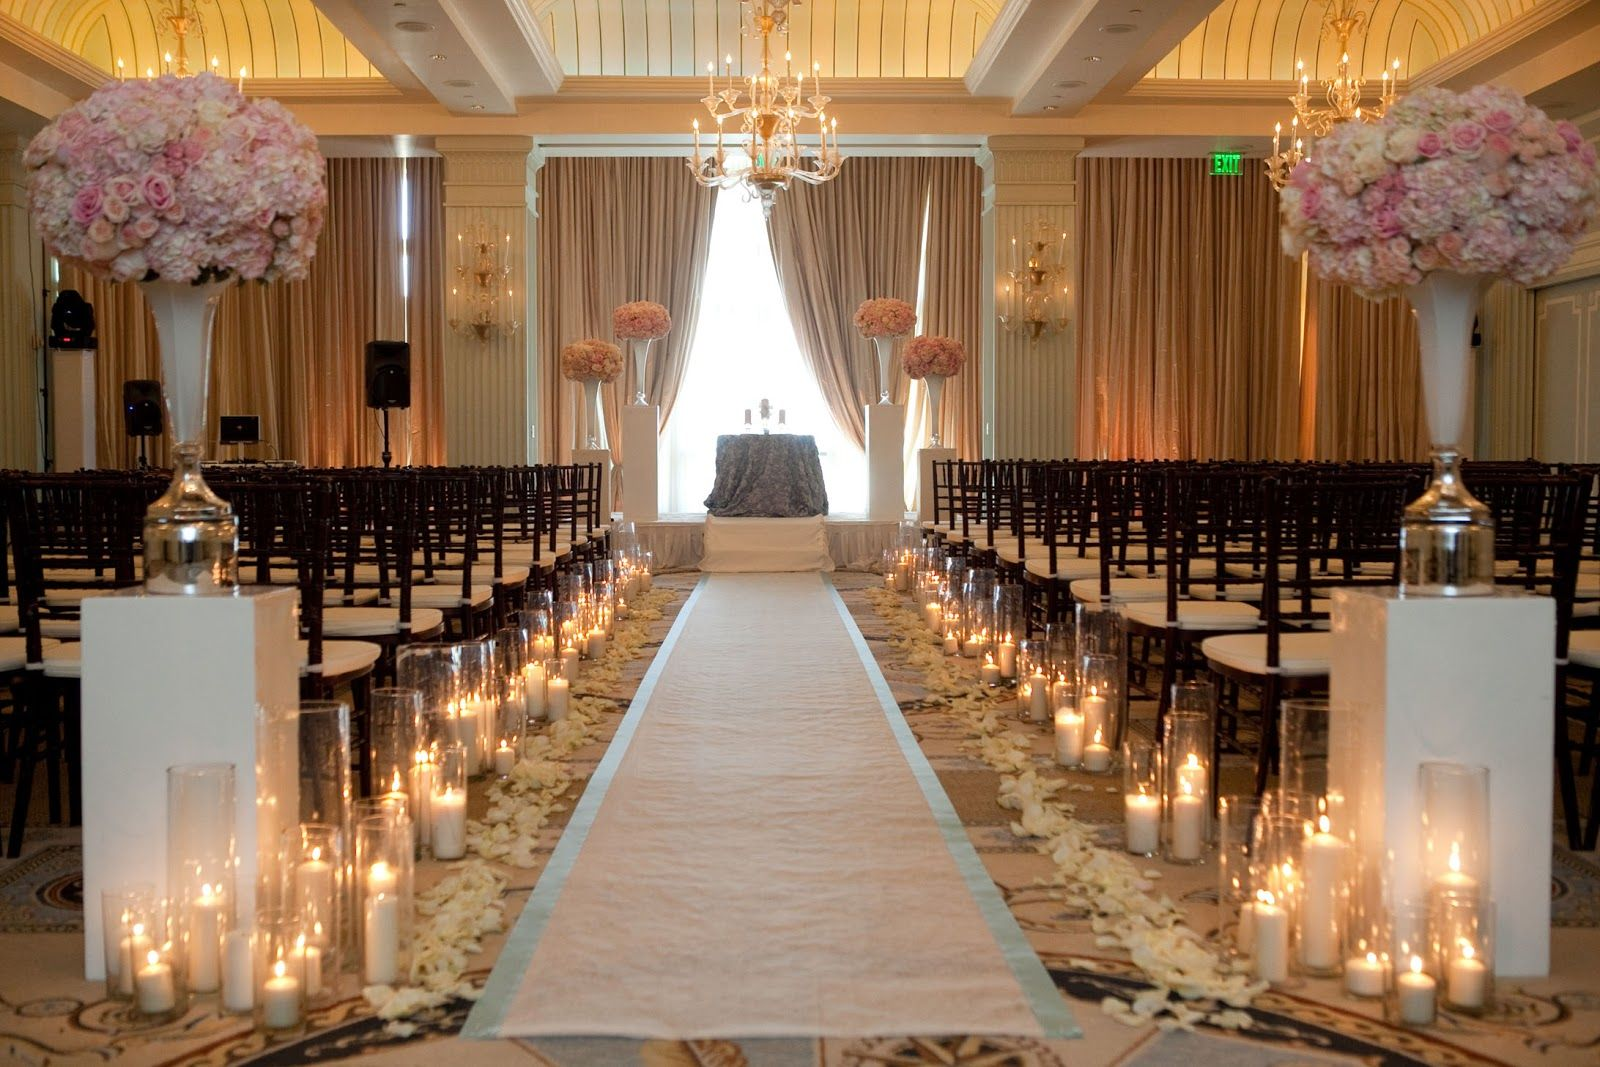 Warm Romantic Wedding Ceremony With Gazebo And Pillars